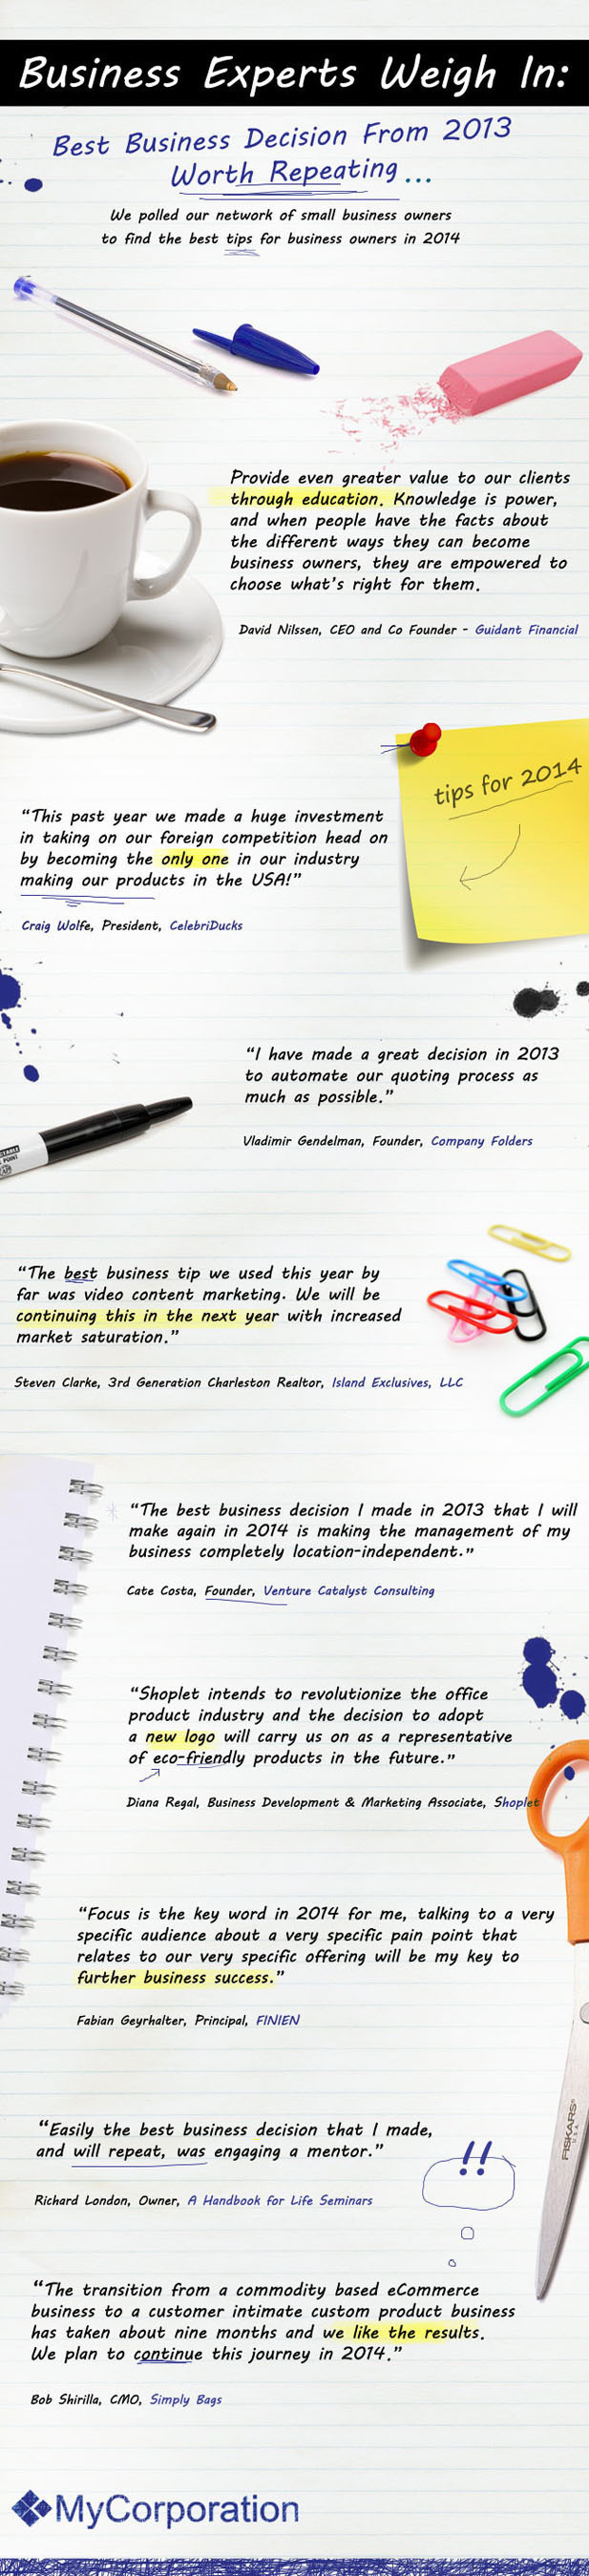 Small Business Experts Reveal to MyCorporation.com the Best 2013 Business Decisions Worth Repeating in 2014. ...